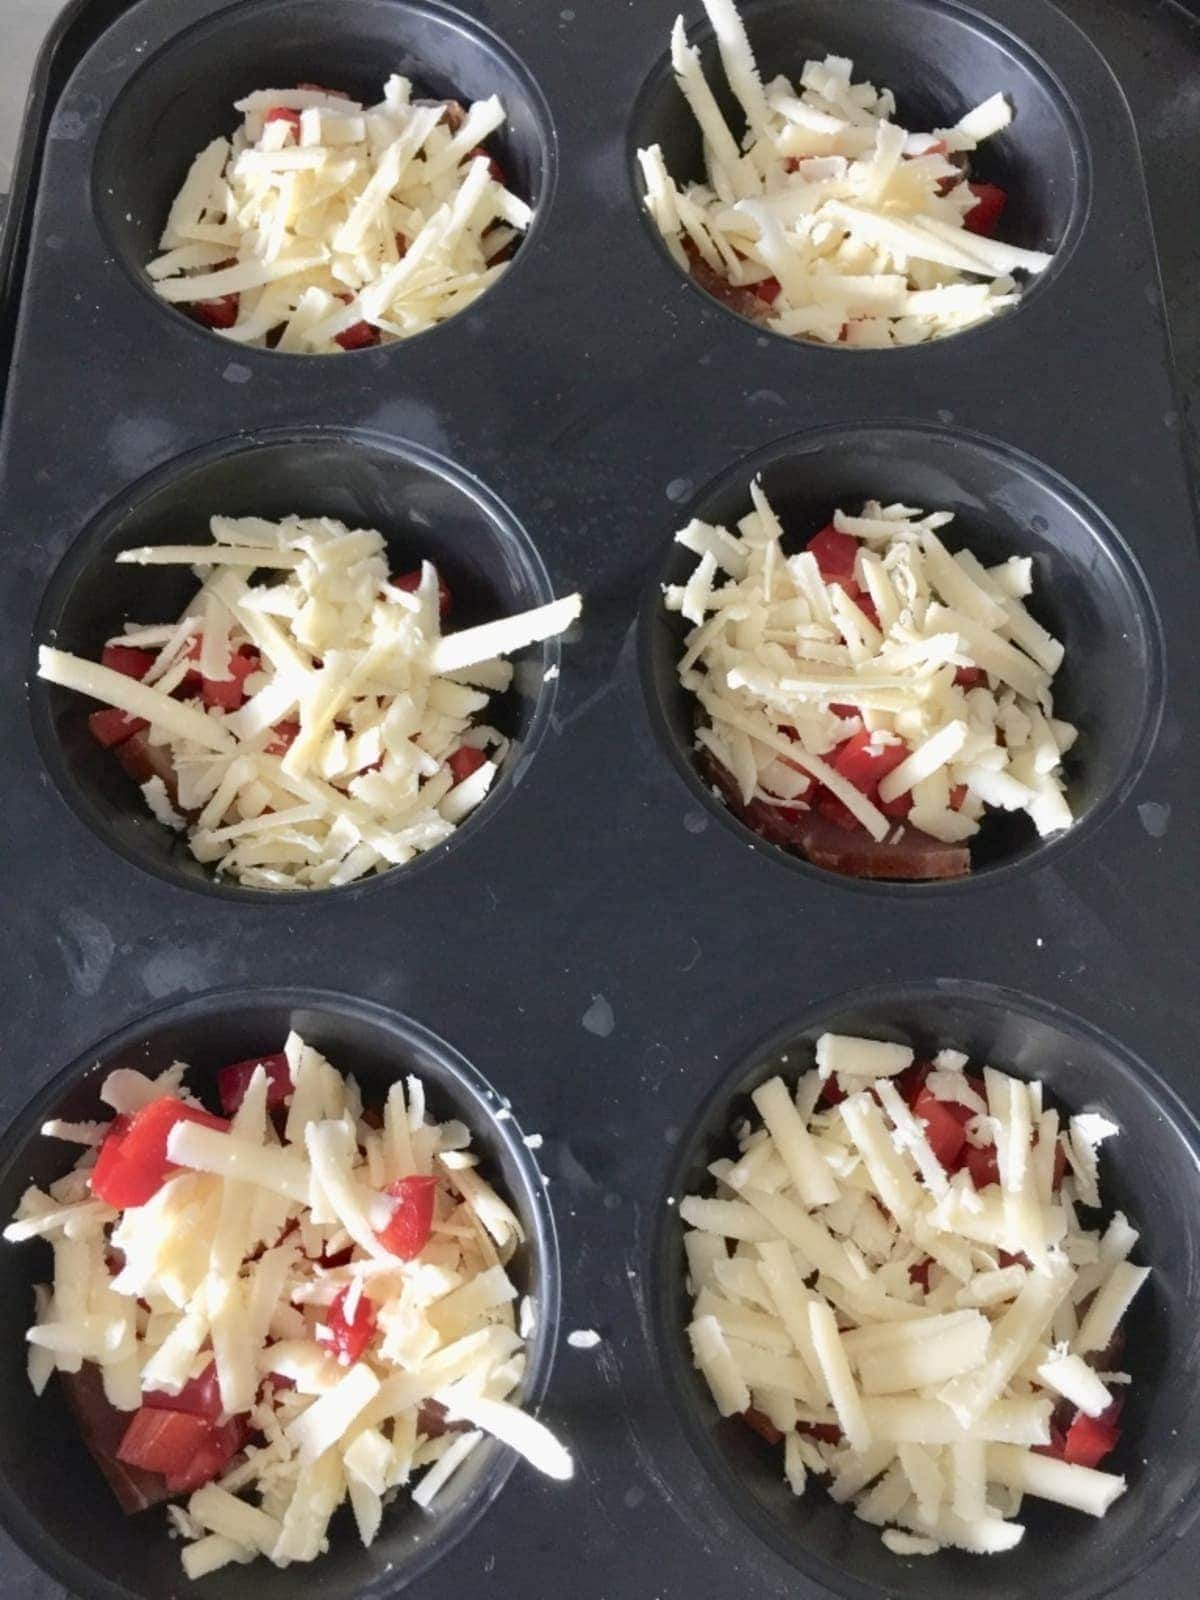 Pepper pieces & grated cheese in a muffin tin.